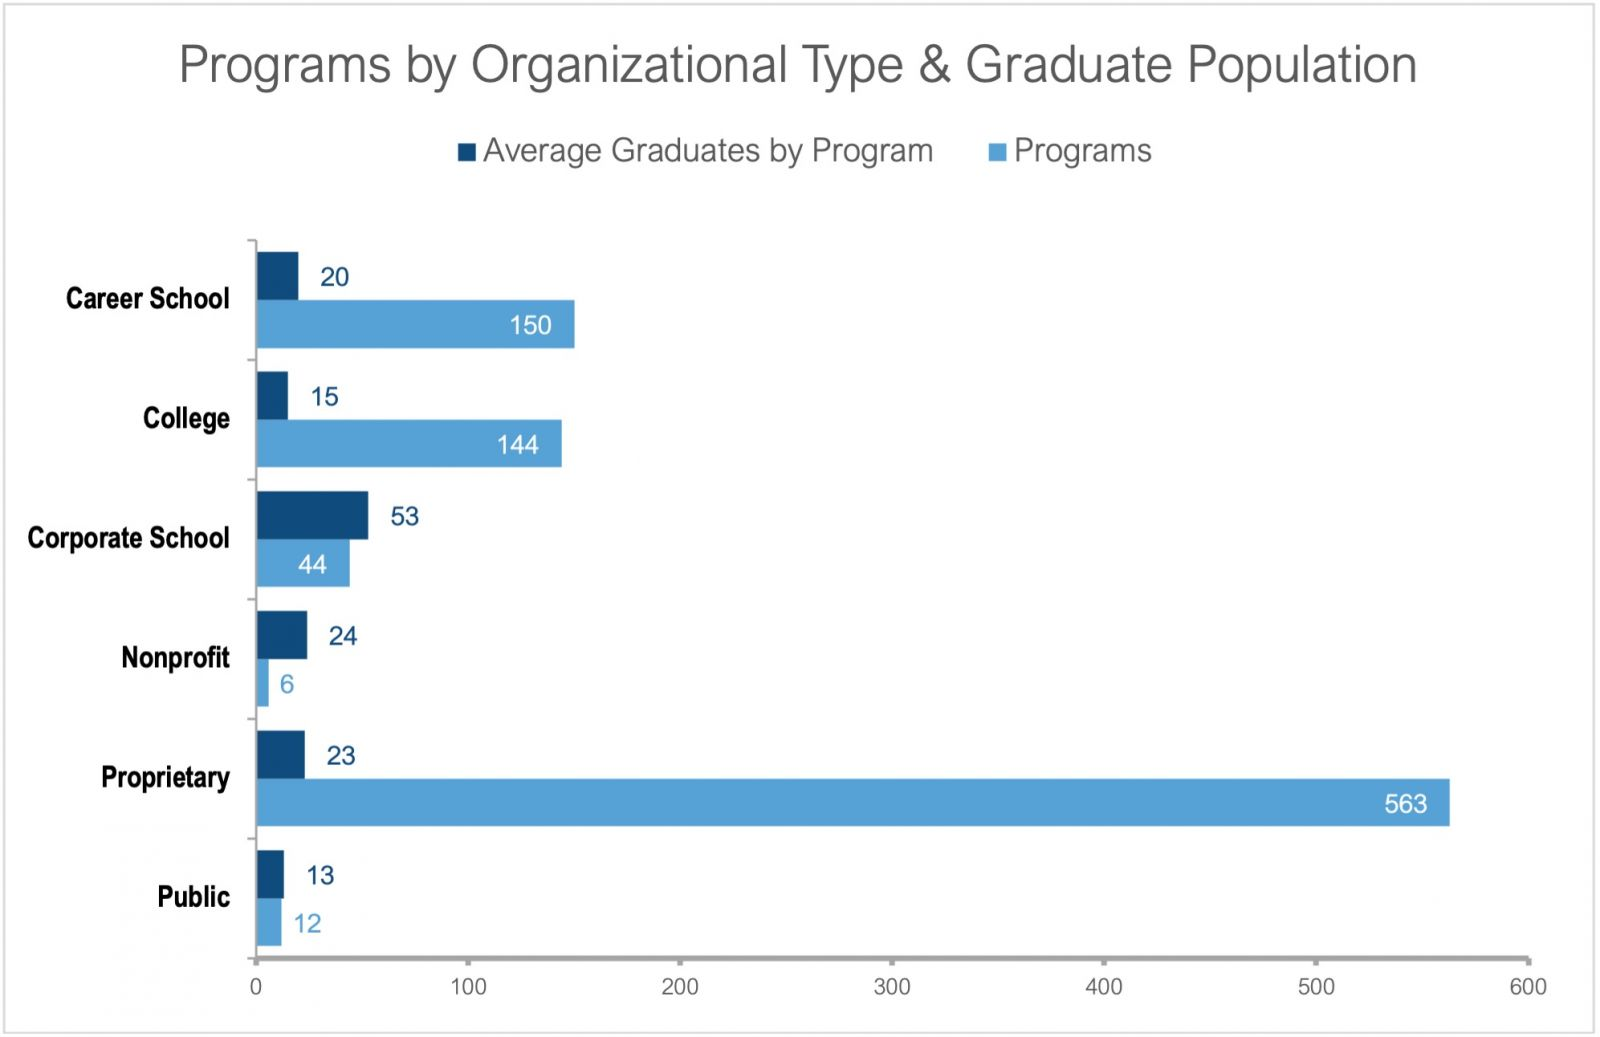 Chart showing massage programs by organizational type and graduate population